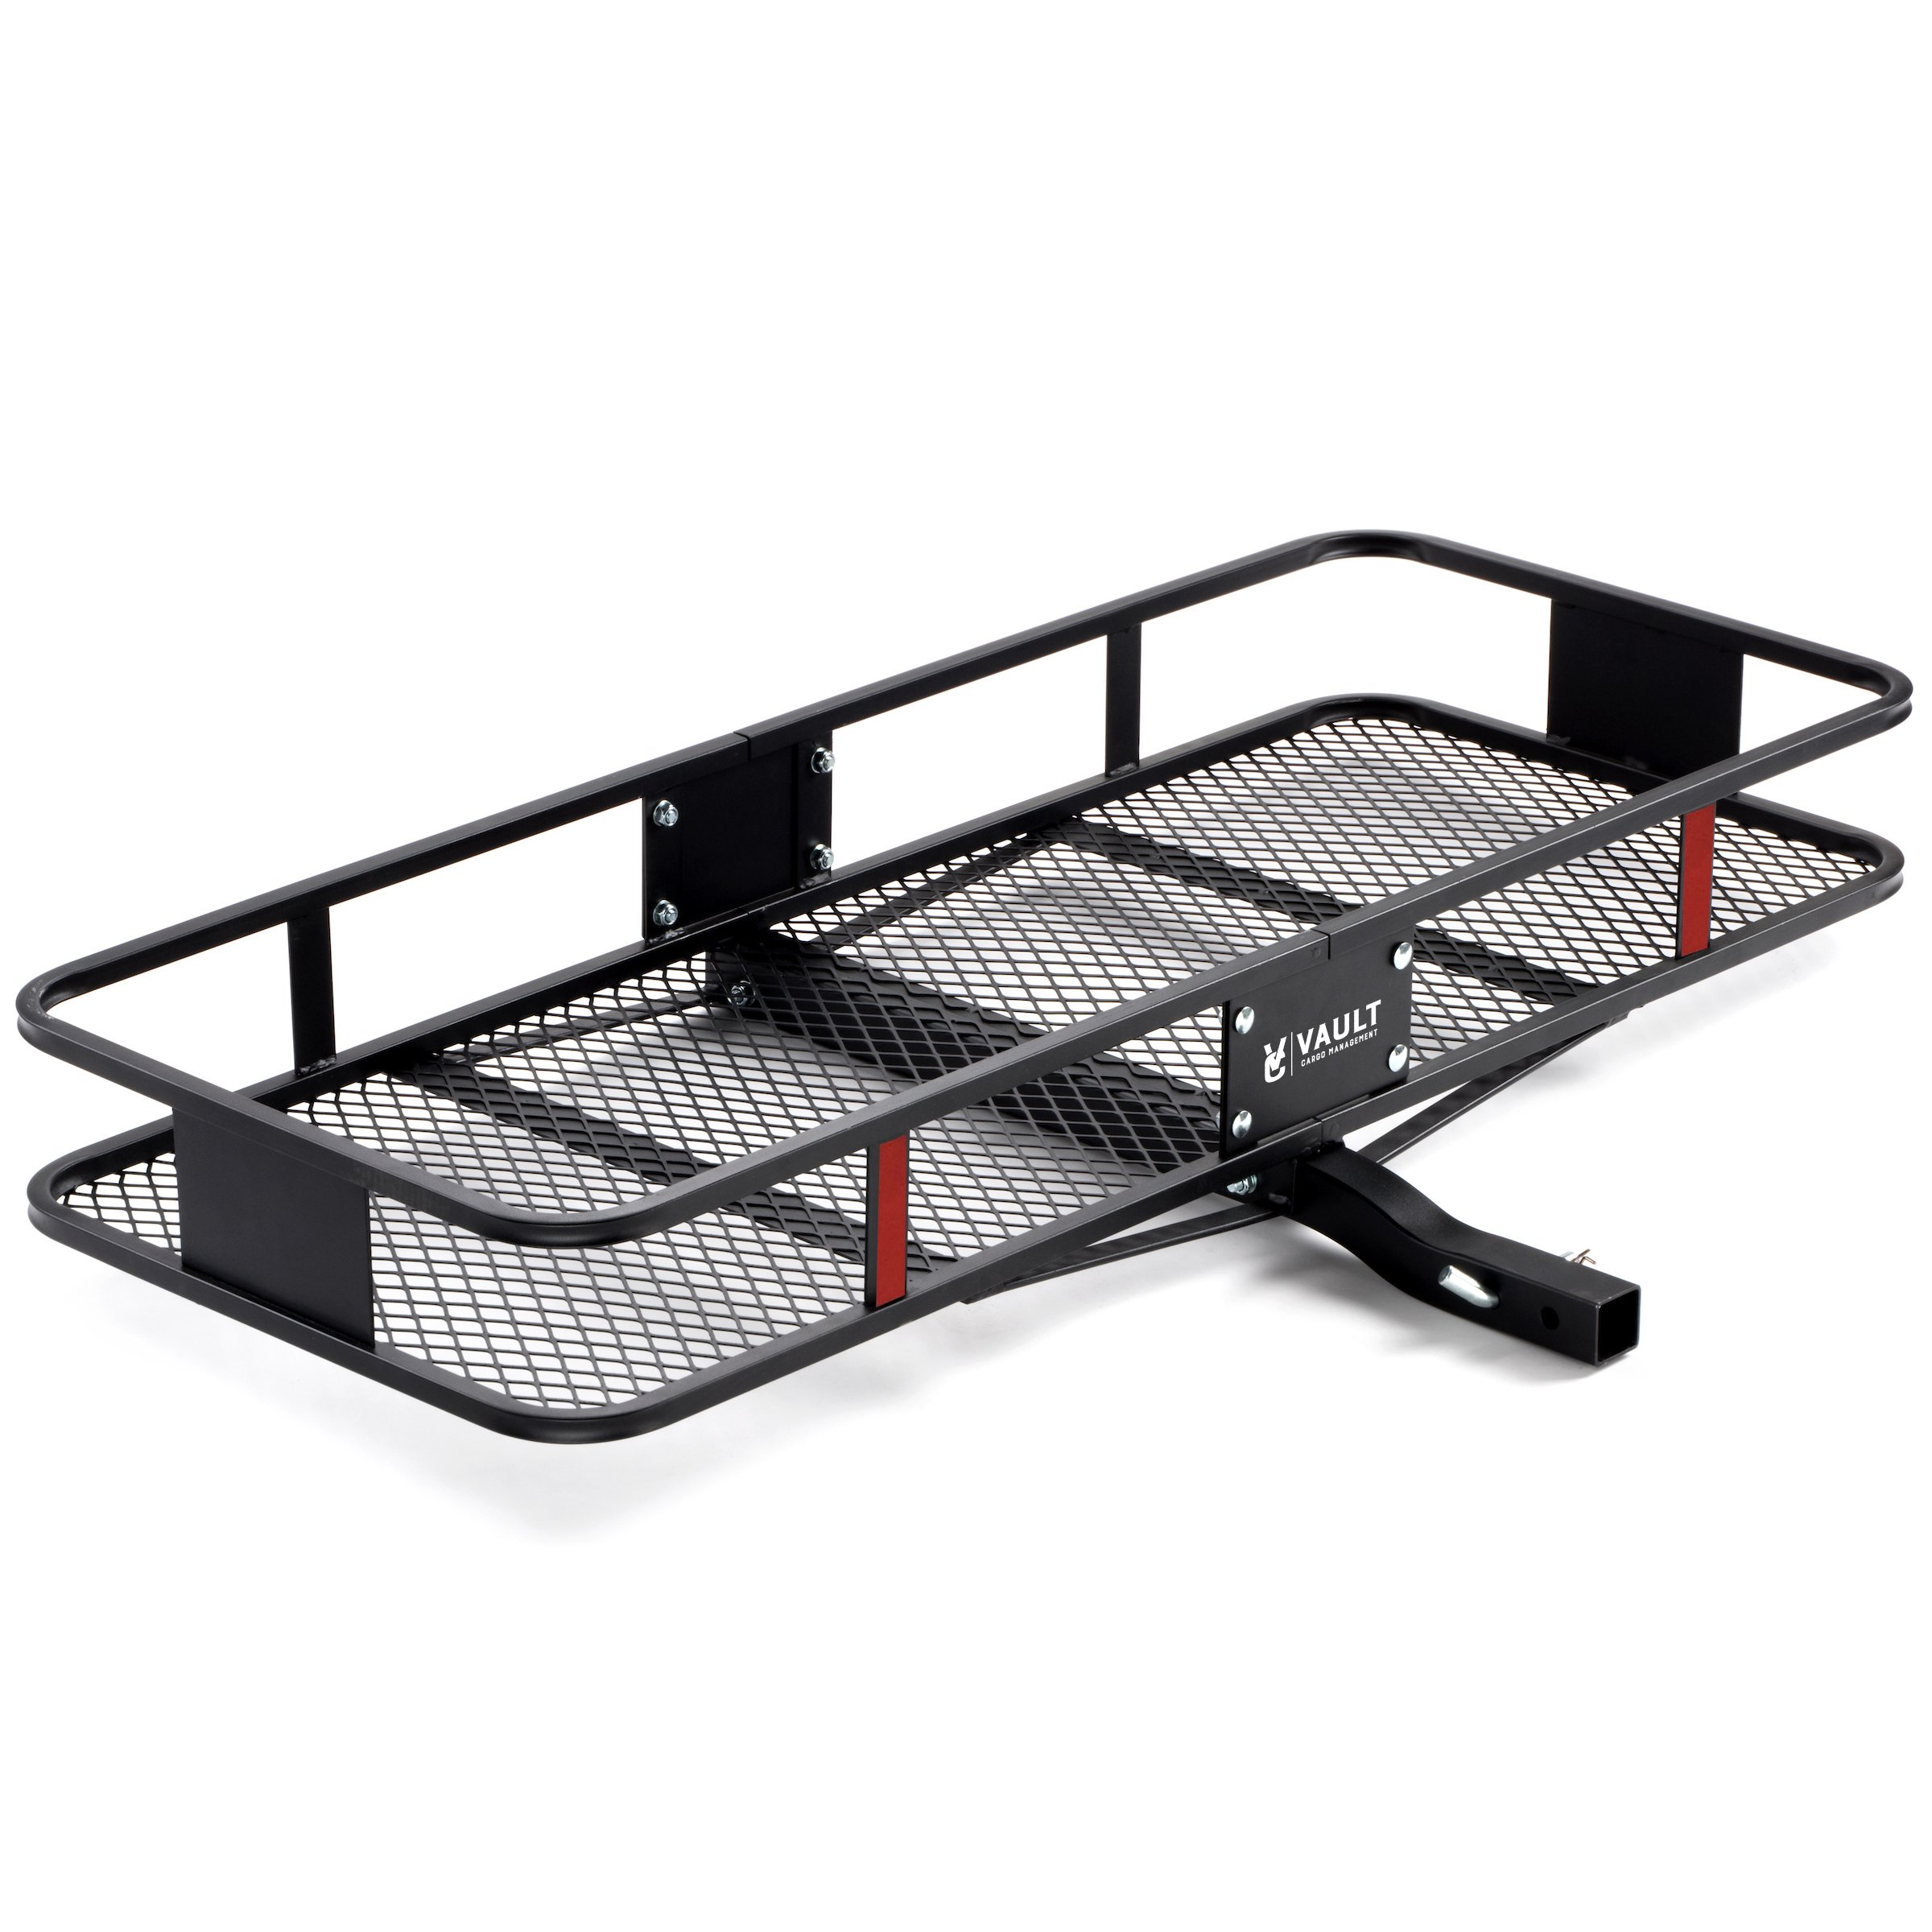 "60"" x 22.5"" Cargo Hitch Carrier by Vault - Haul Your Cooler & Camping Gear with this Rugged Steel Storage Rack & Basket for Your Truck or SUV - Easily Mounts to Trailer Towing Hitches by Vault Cargo Management"